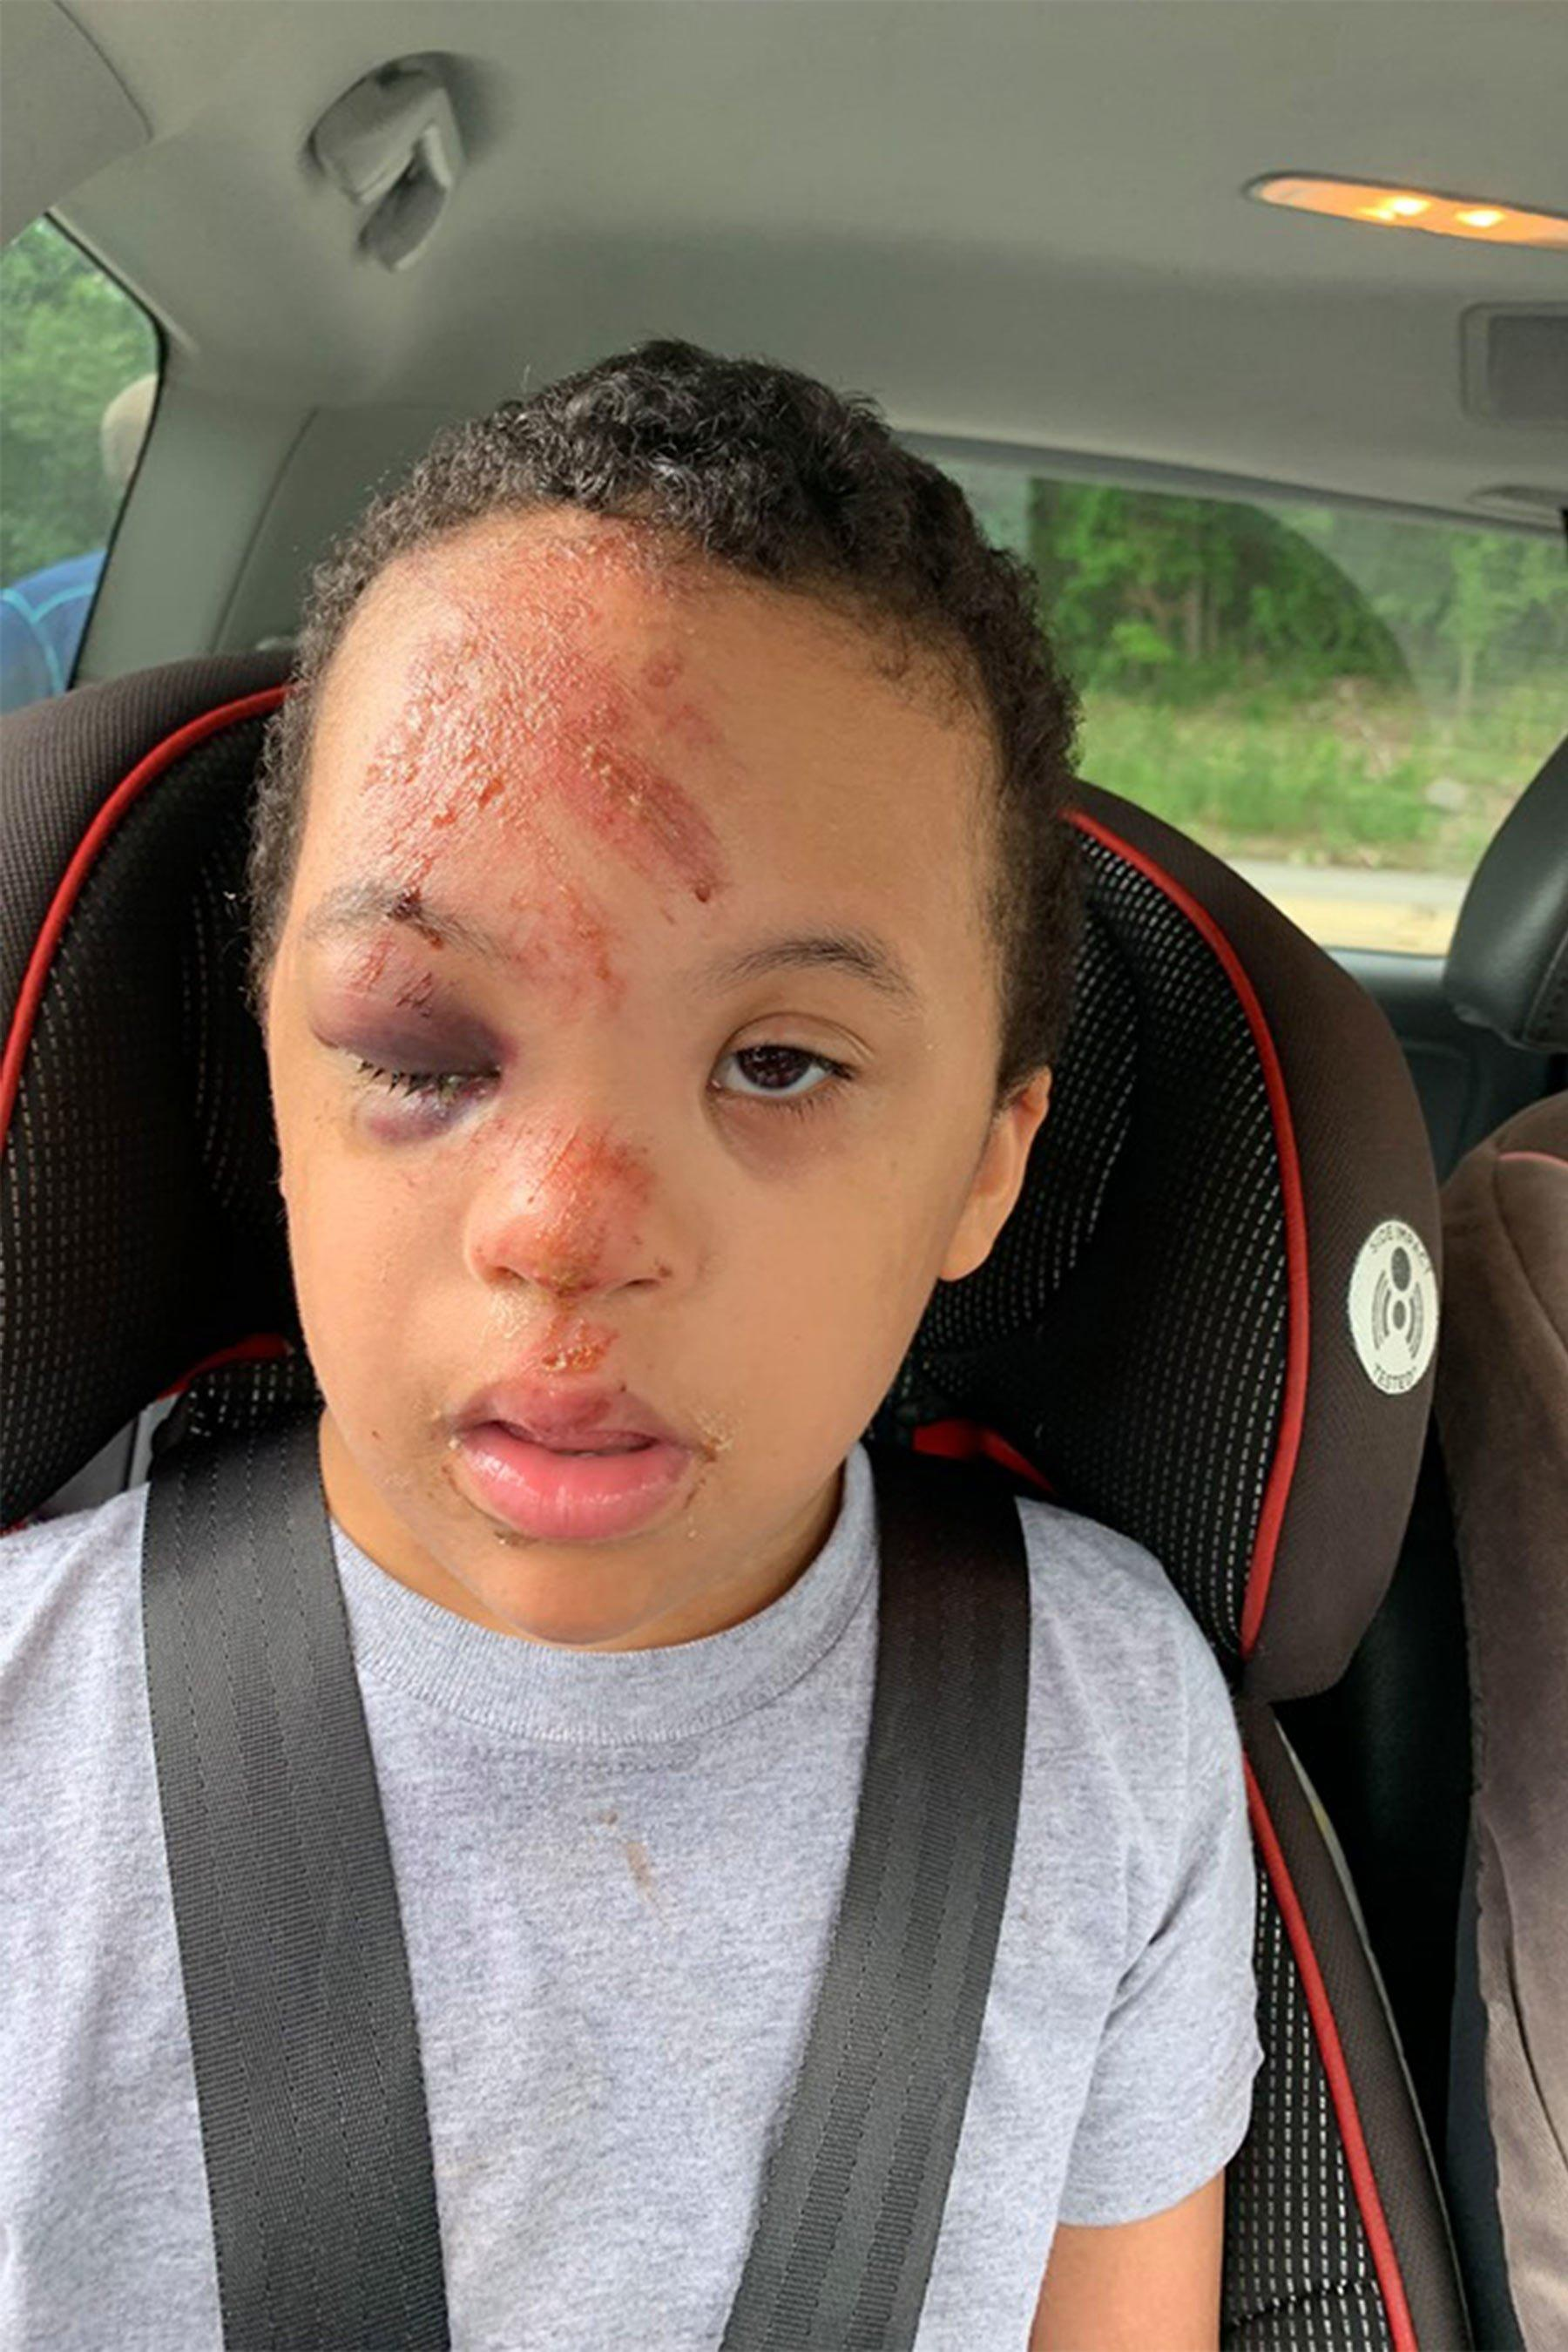 Pennsylvania Mom Outraged After Son 7 With Down Syndrome Suffers Bloodied Face On School Bus